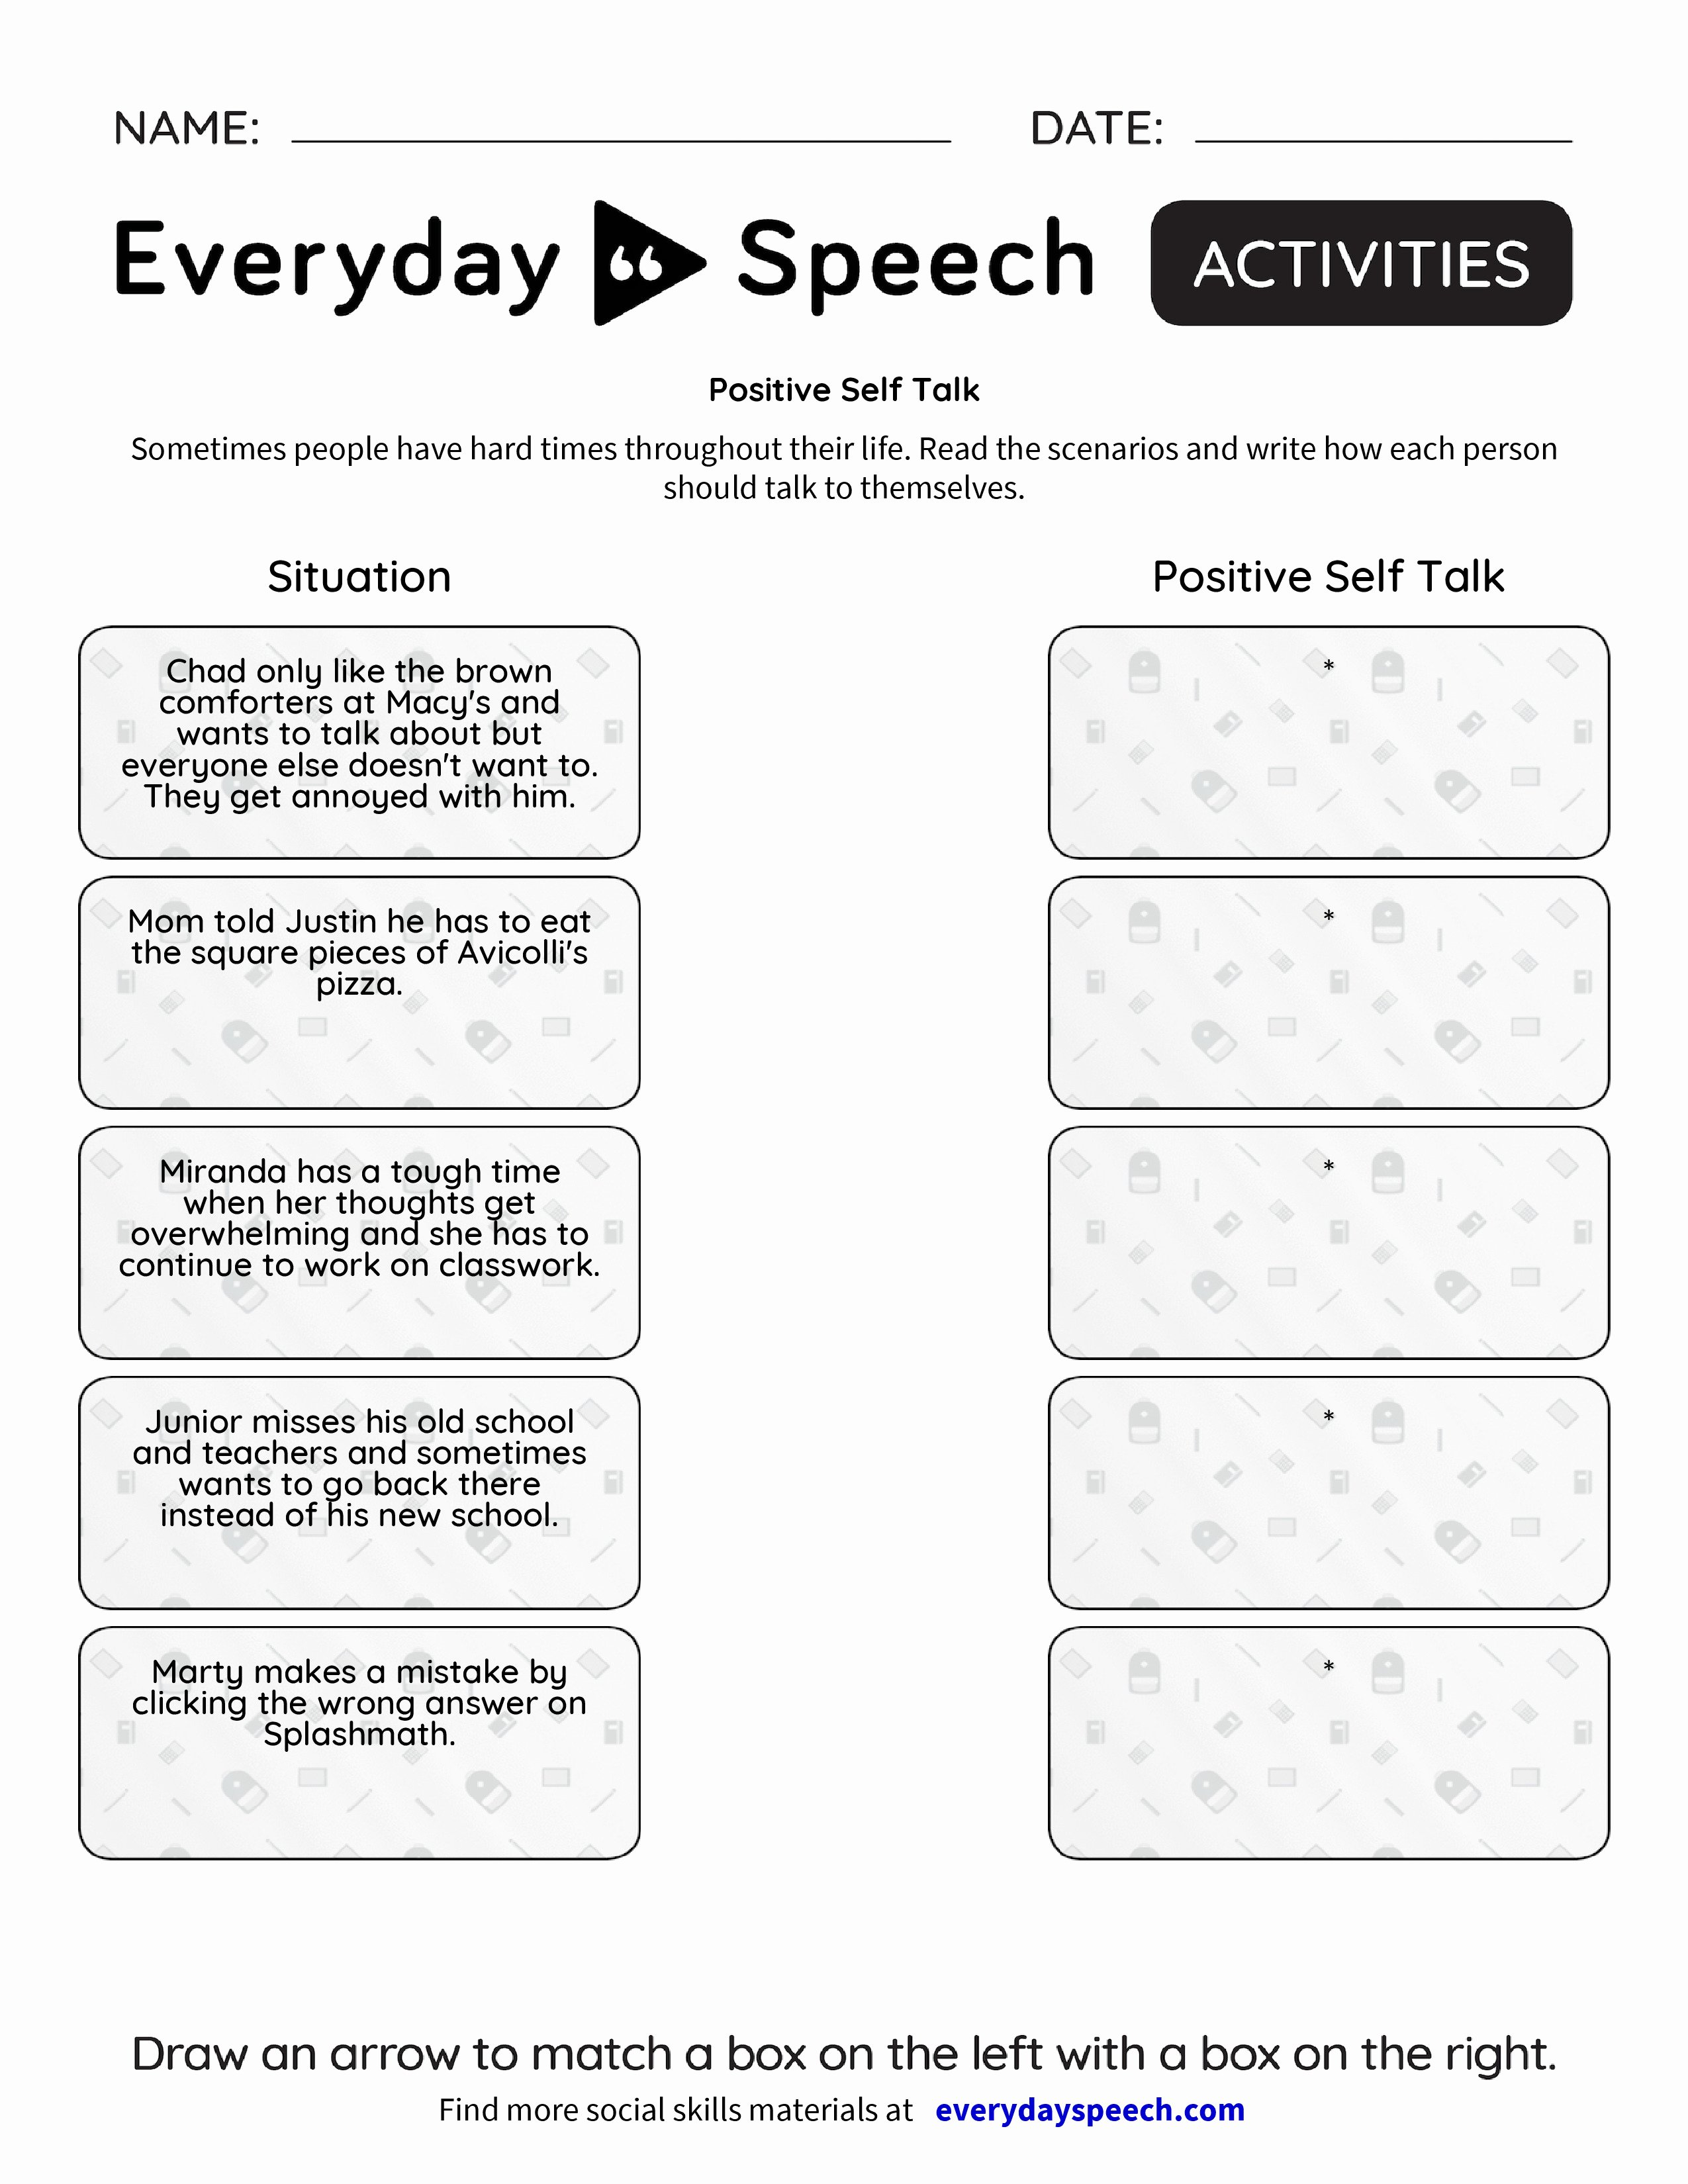 Positive Self Talk Worksheet Unique Positive Self Talk Everyday Speech Everyday Speech